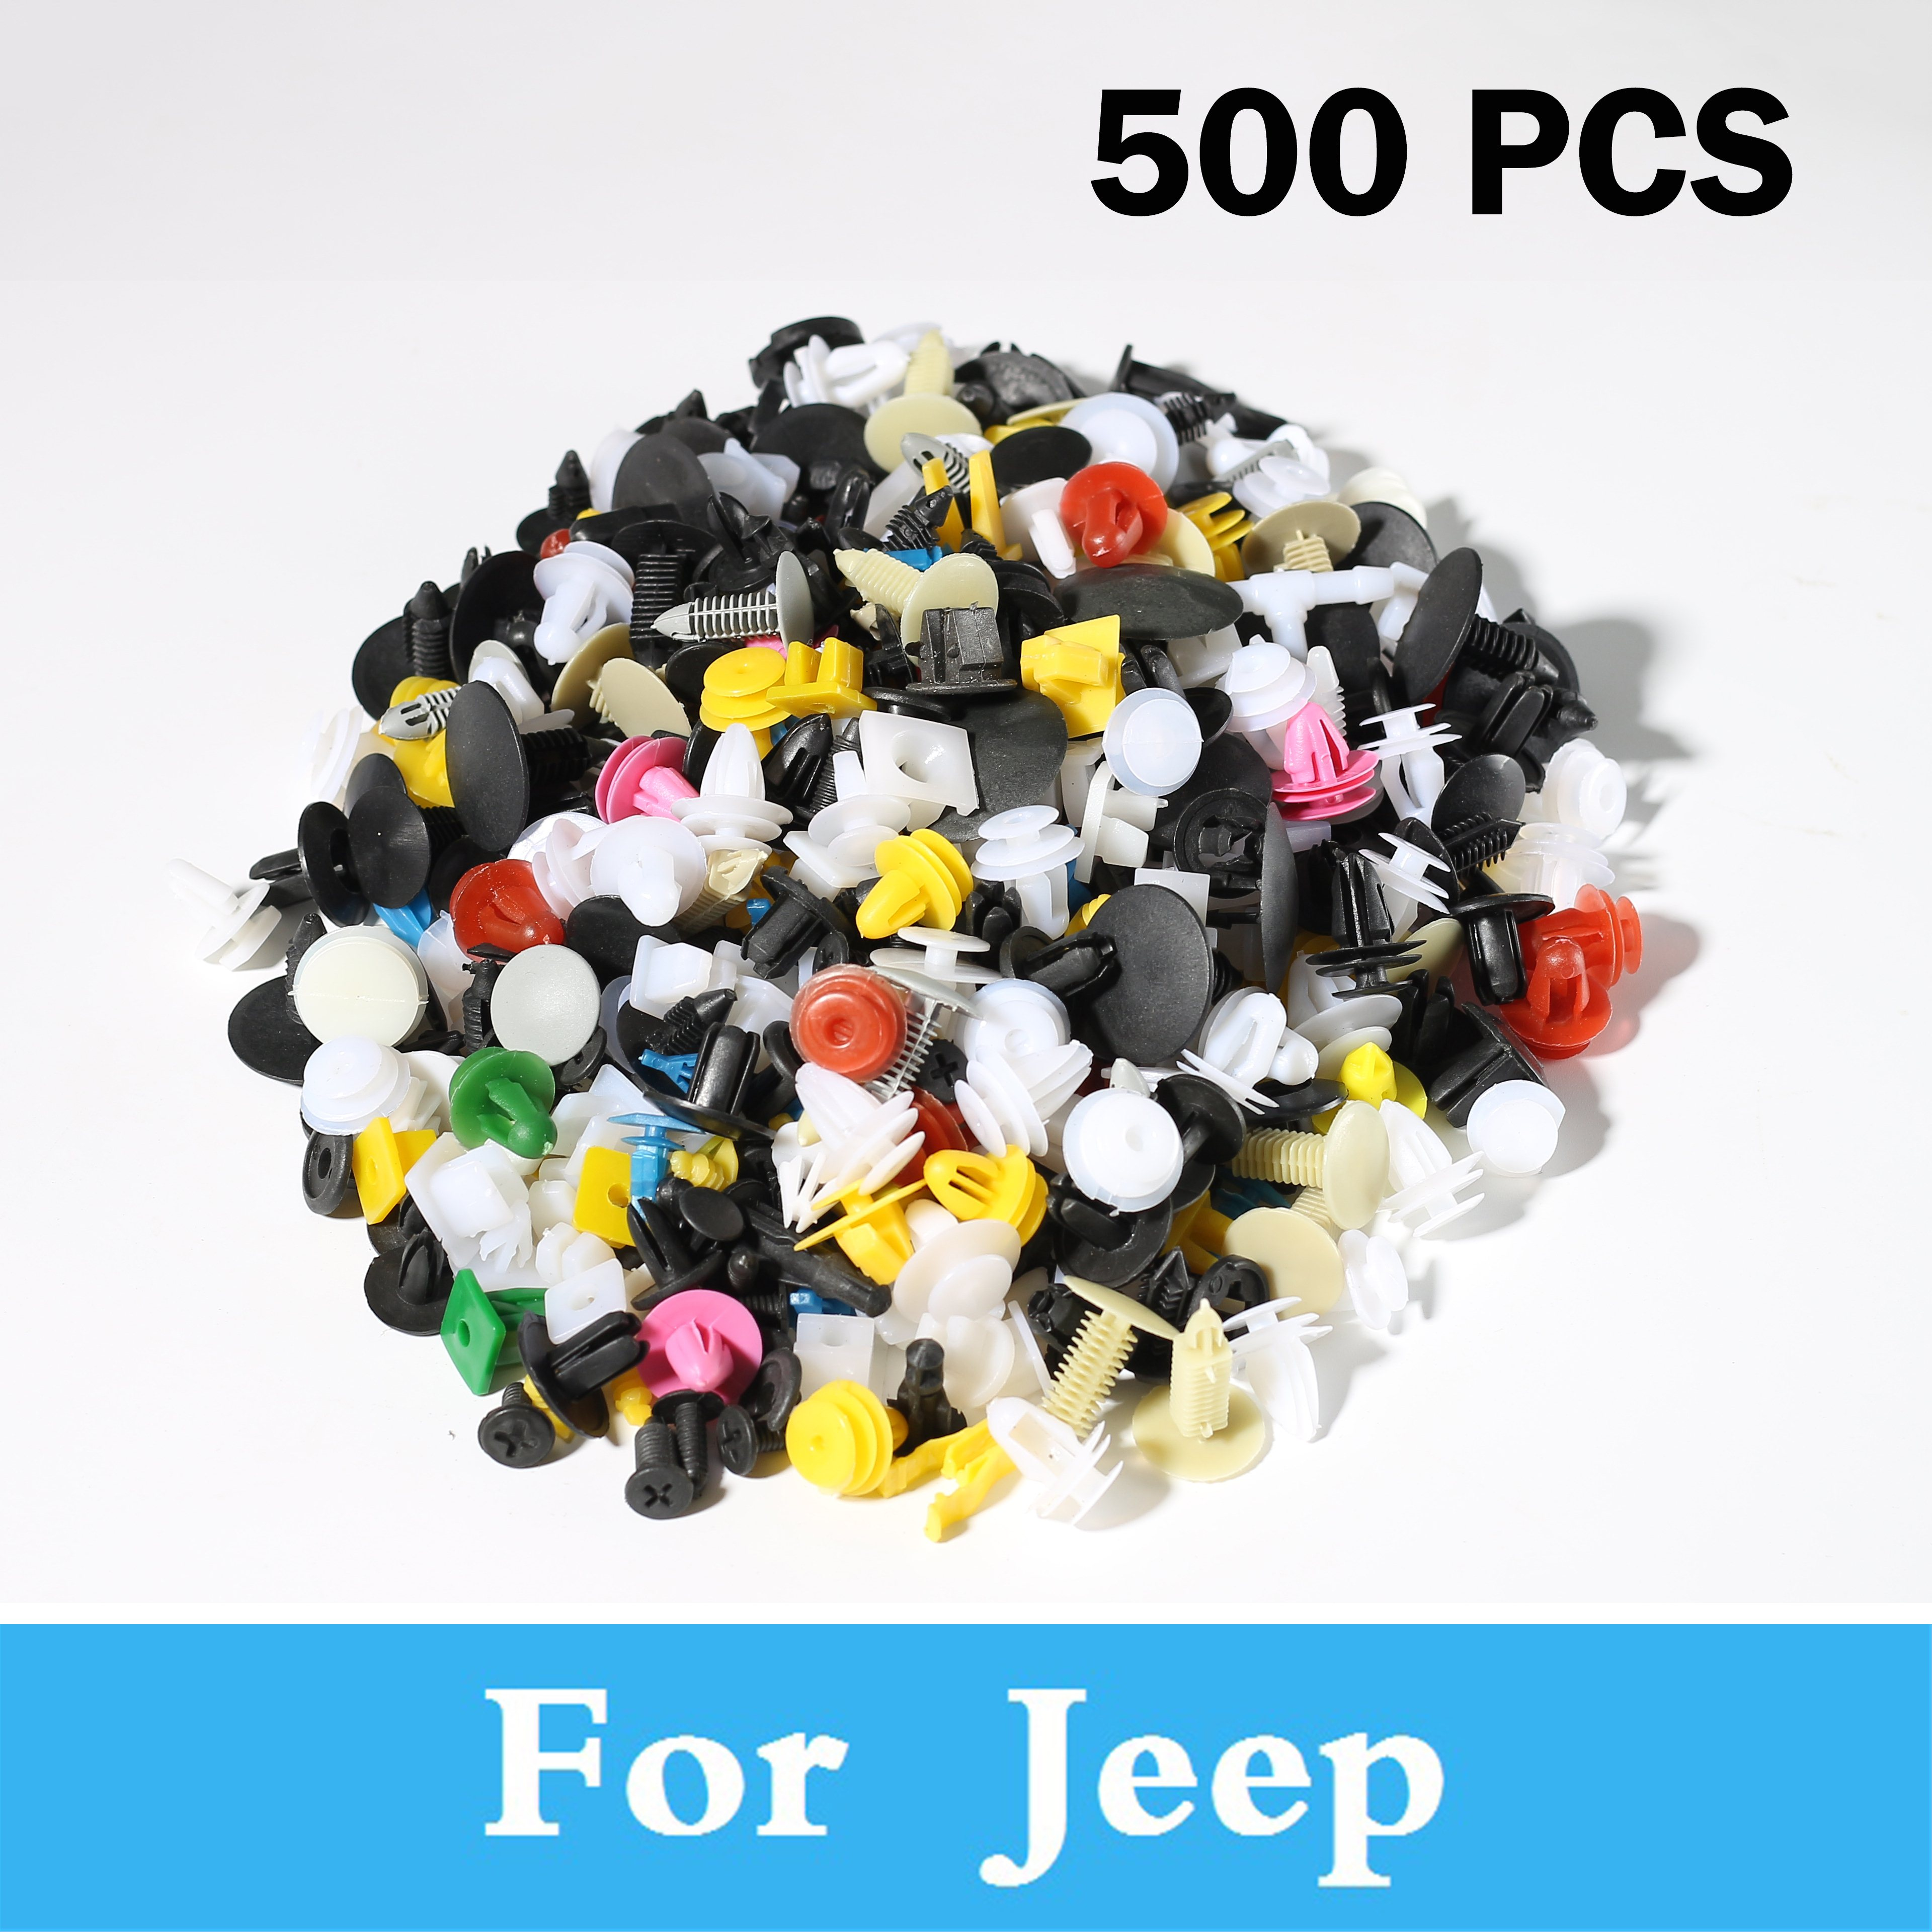 New 500pcs Mixed Car Styling Bumper Clips Retainer Rivet Decoration For Jeep Cherokee Srt8 Cherokee Cherokee Grand Compass Grand